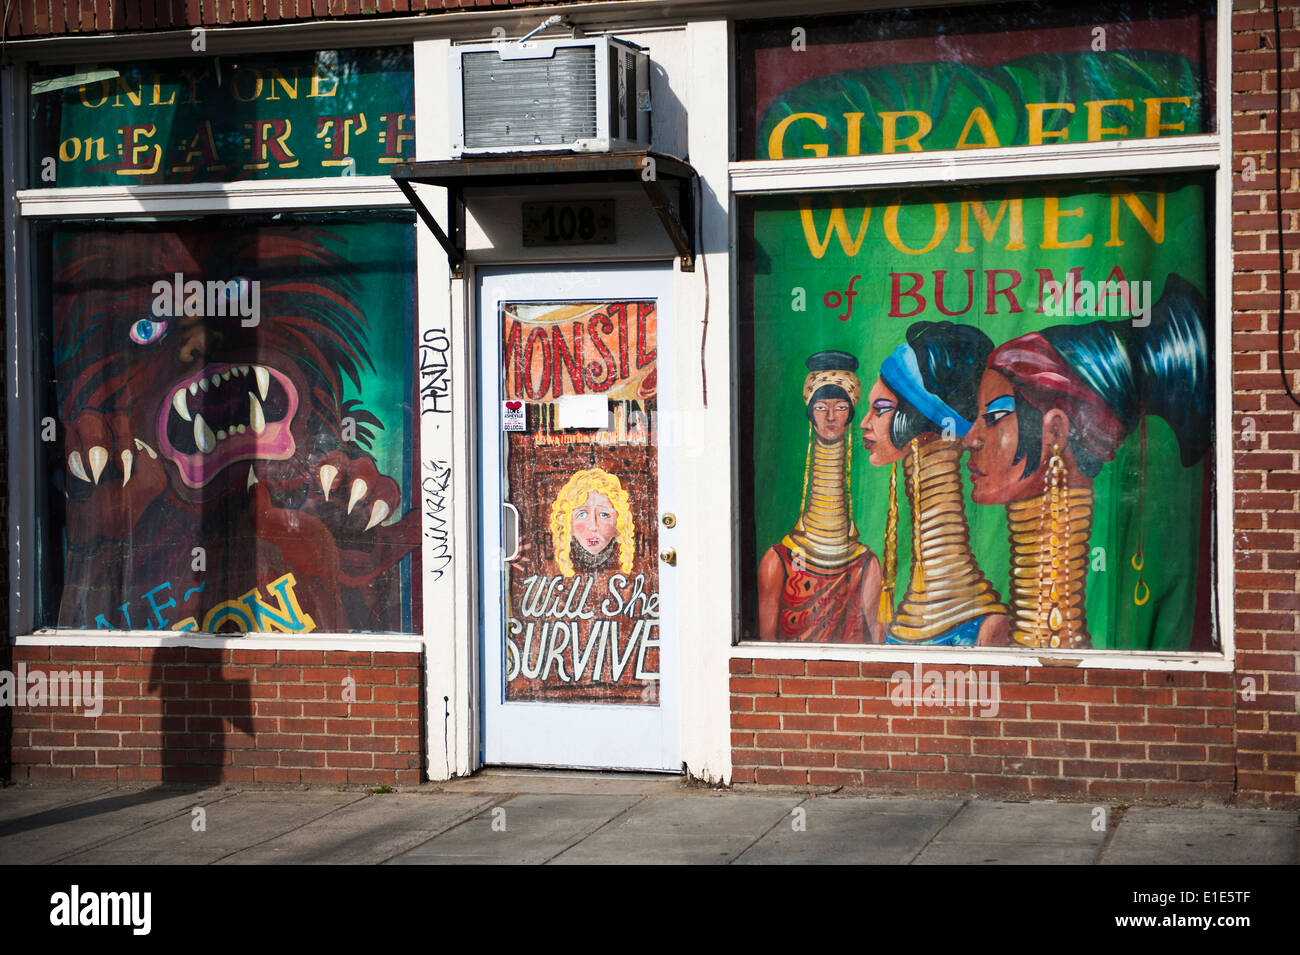 Store front with old 'freak show' posters in windows, Asheville North Carolina - Stock Image